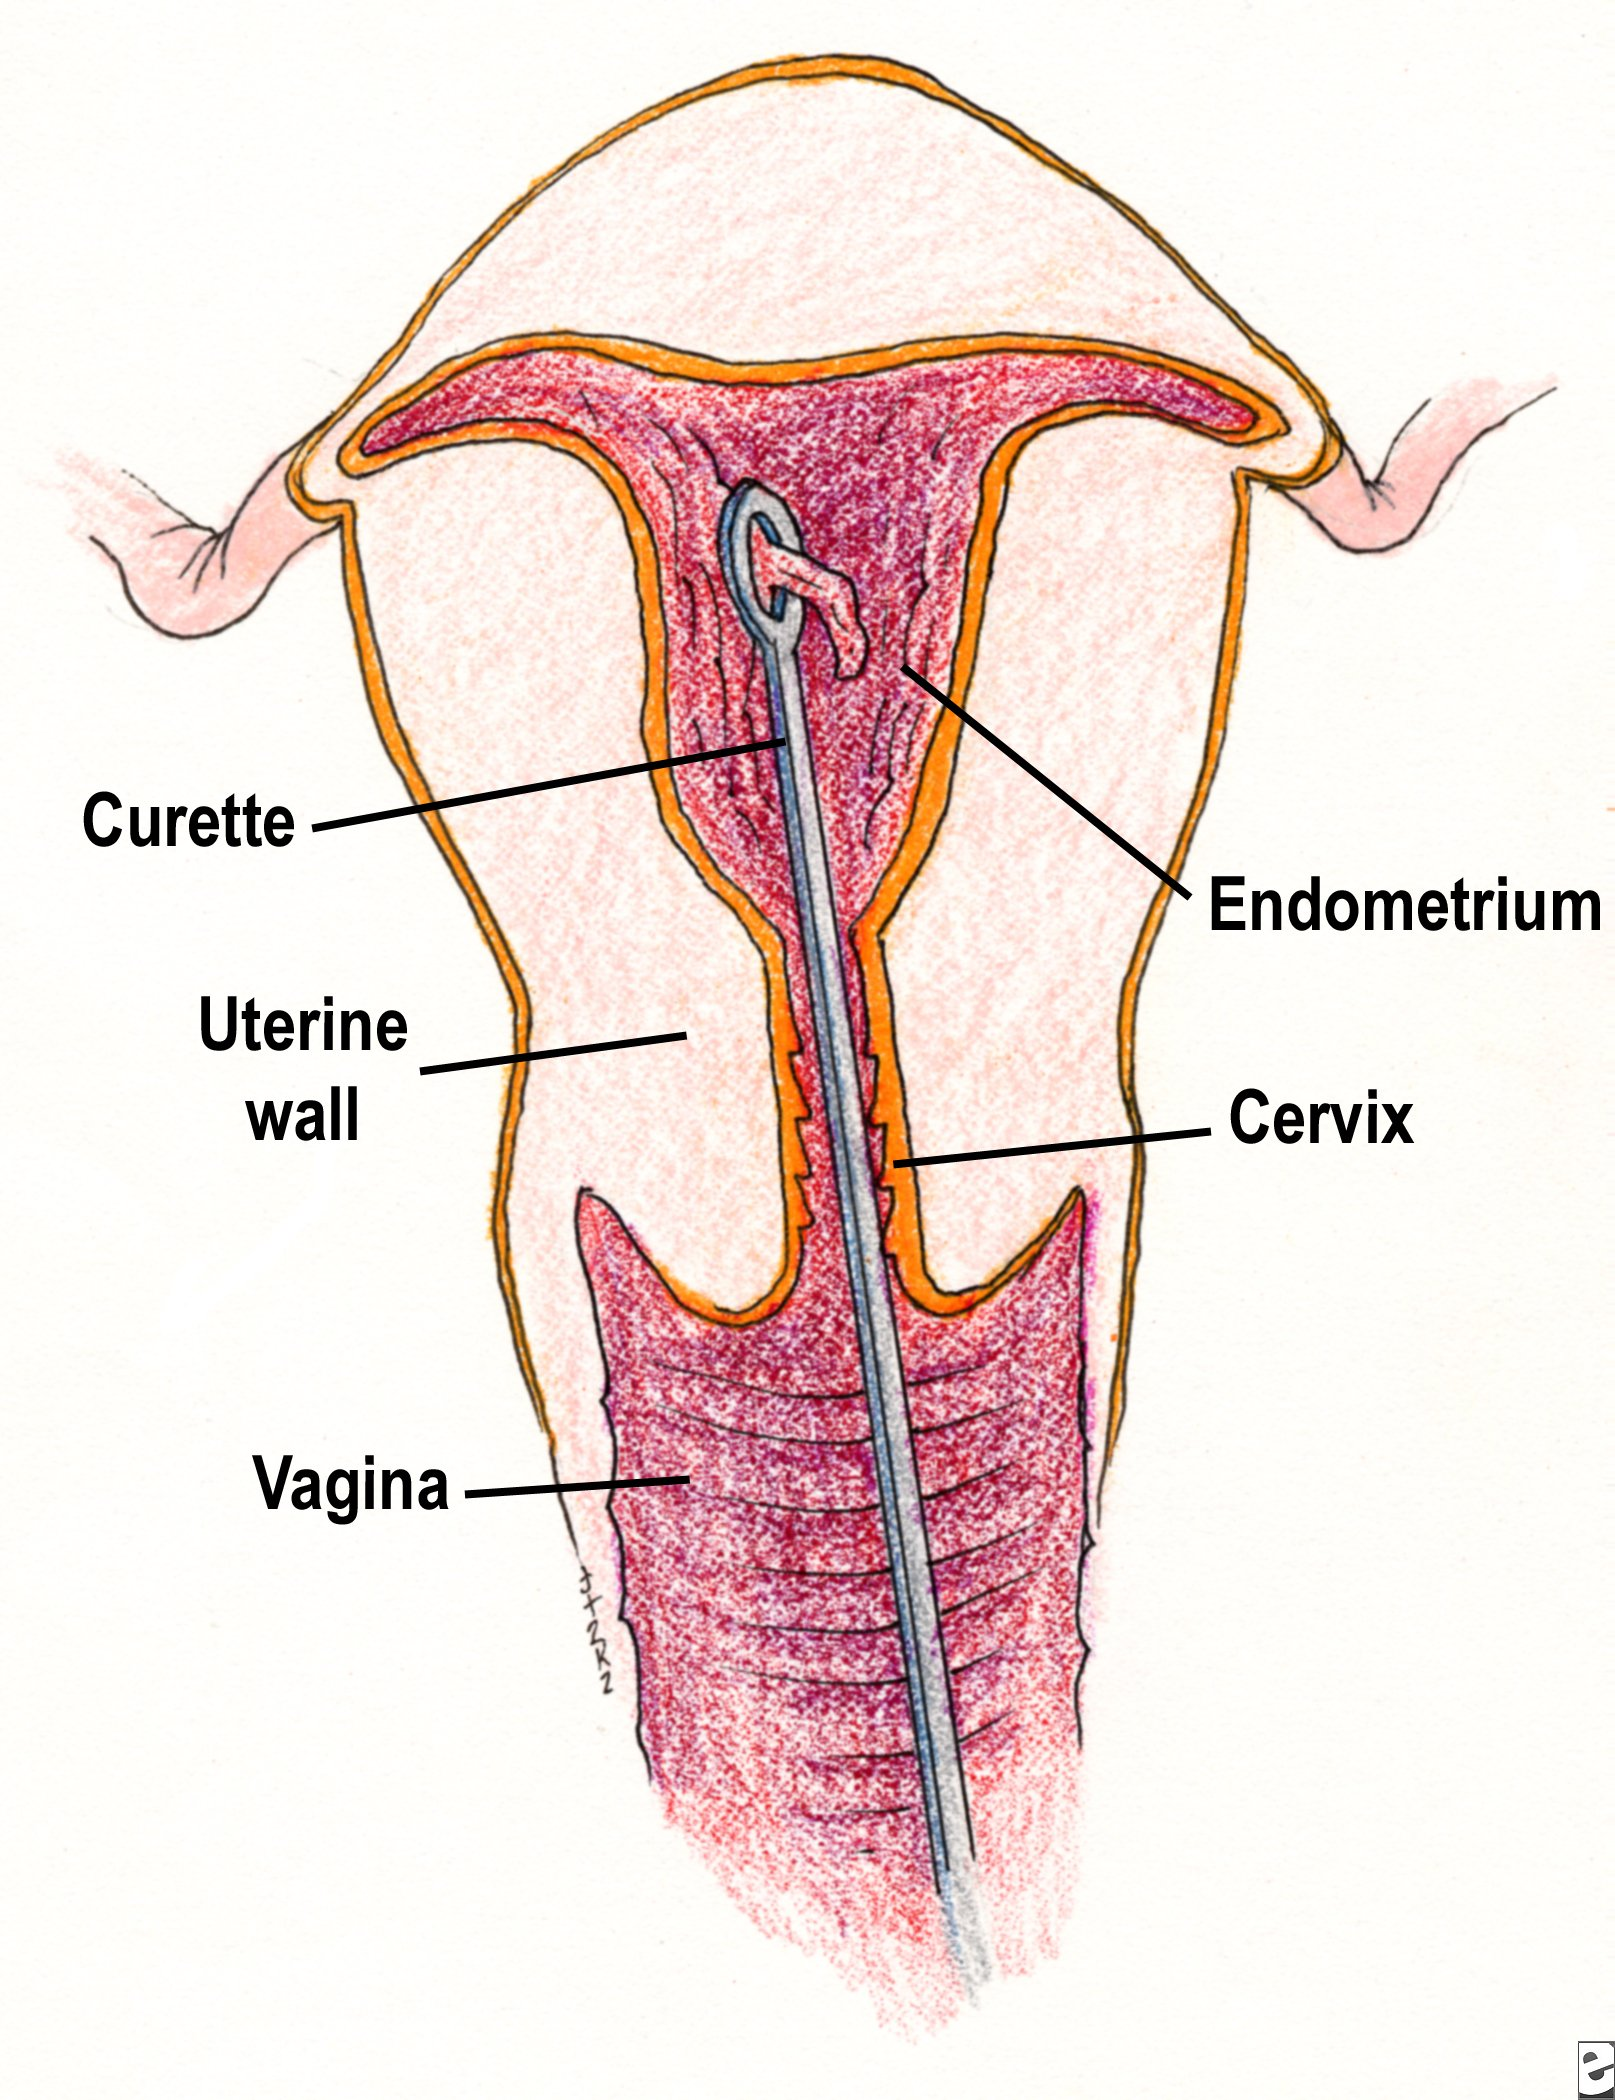 Curettage showing the instrument inserted into the uterus.